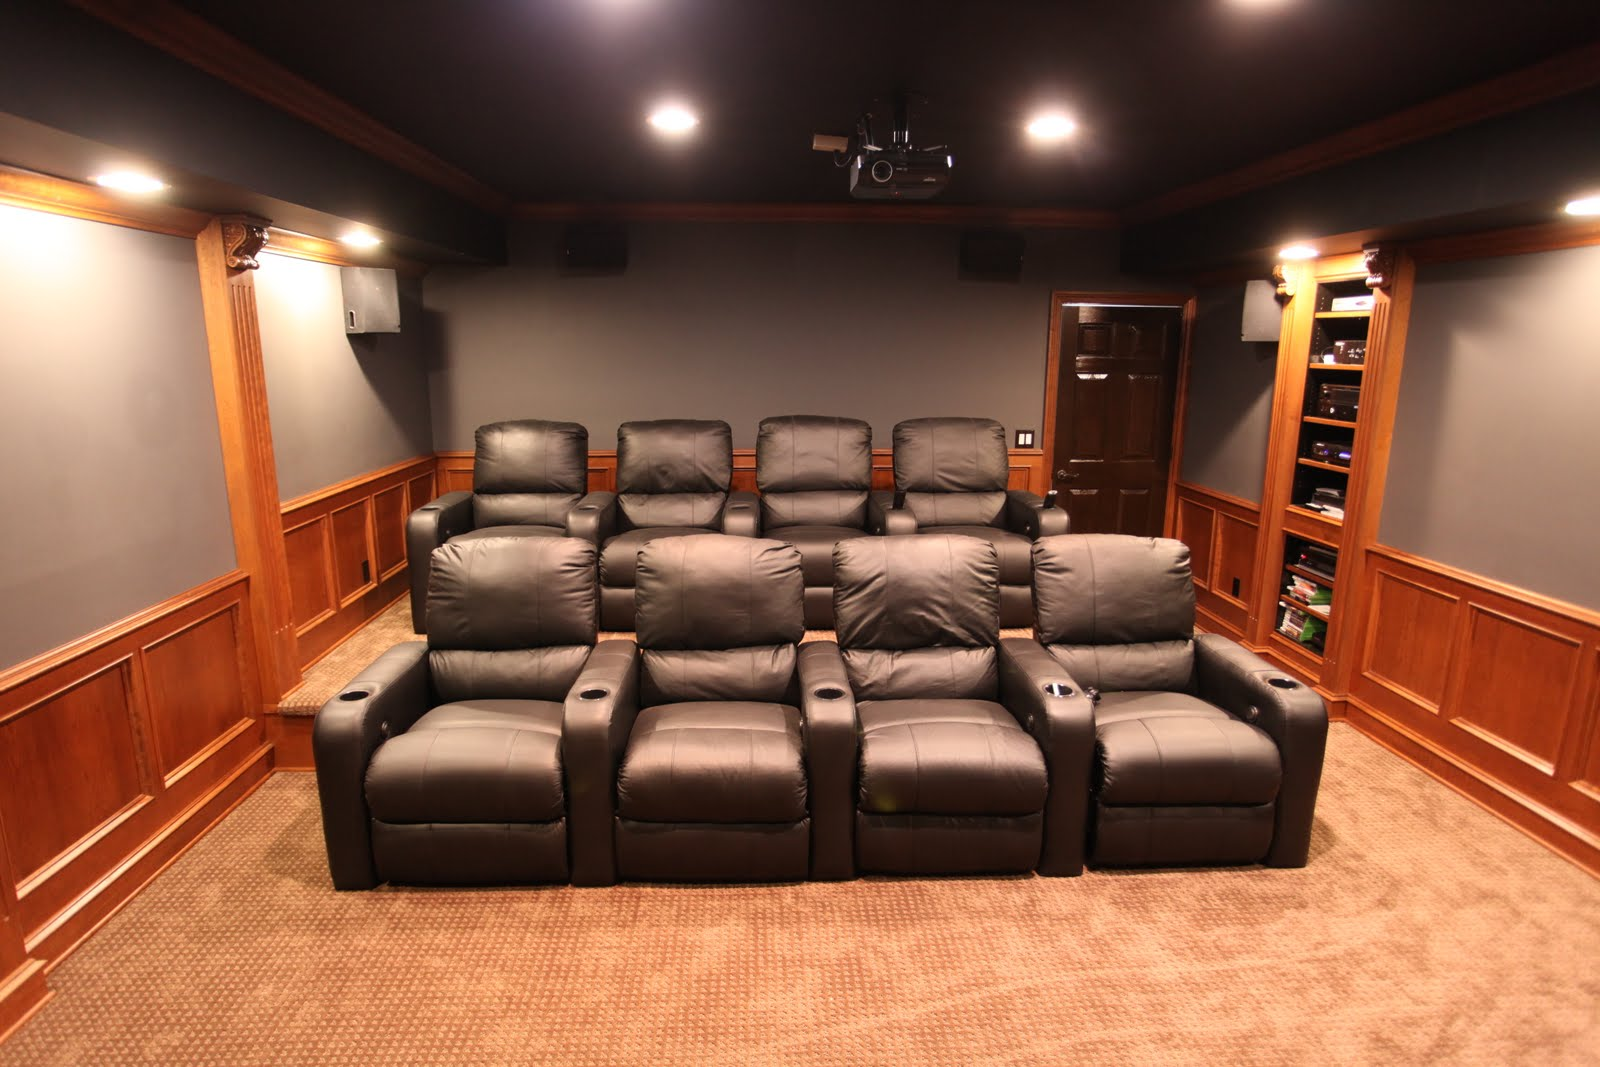 10 x 10 home theater room design and ideas - Home theater room design ideas ...